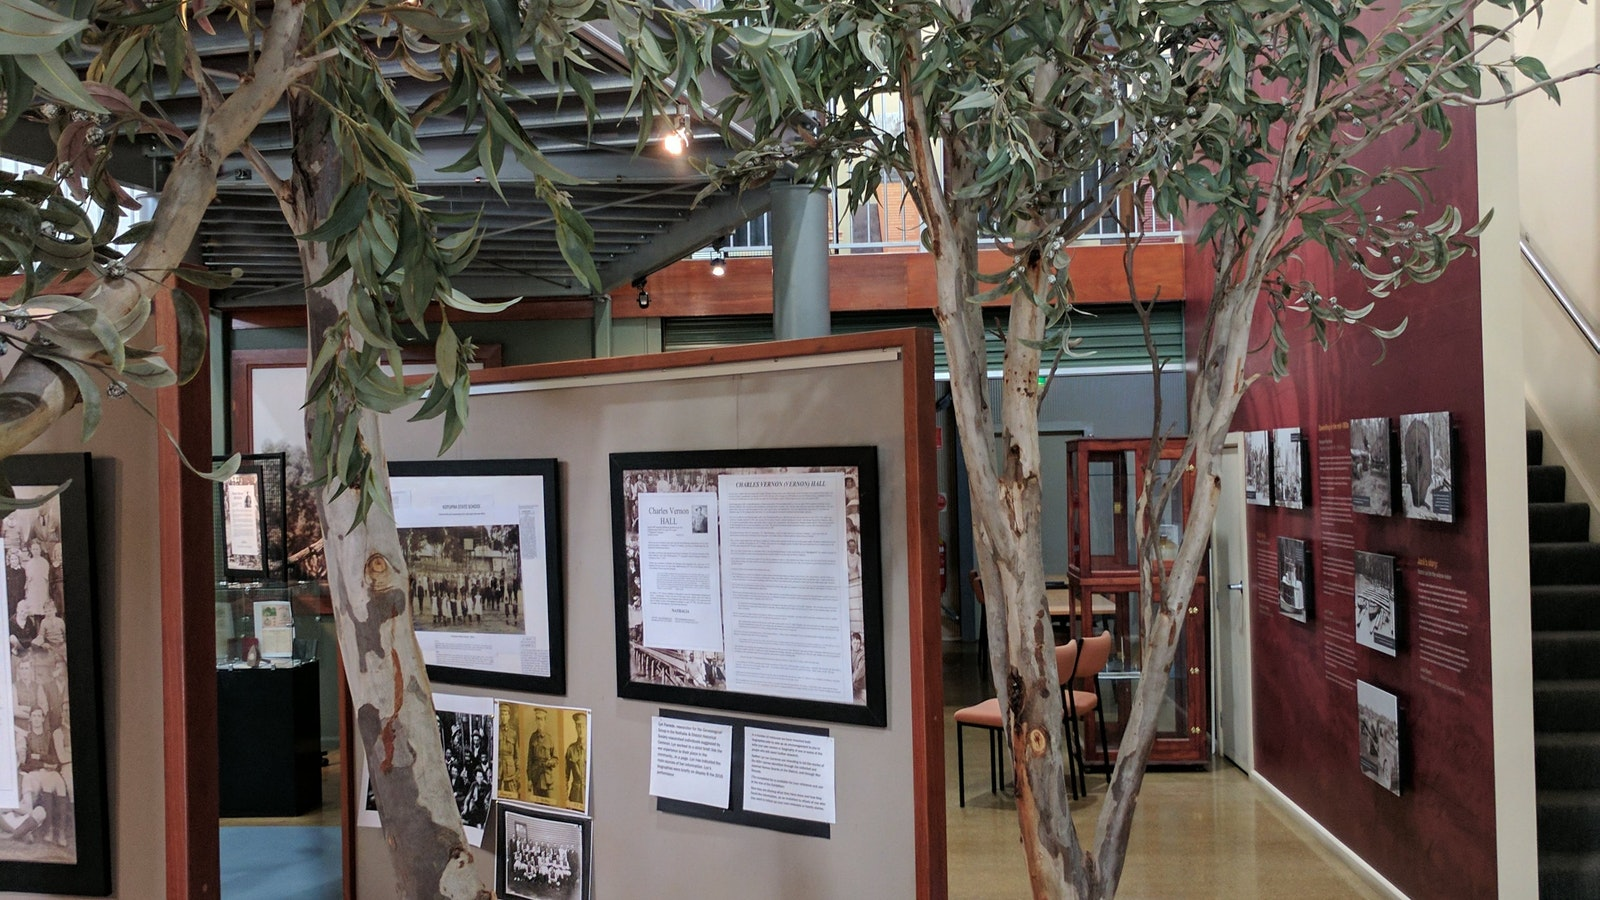 Exhibition at the Barmah Forest Heritage and Education Centre